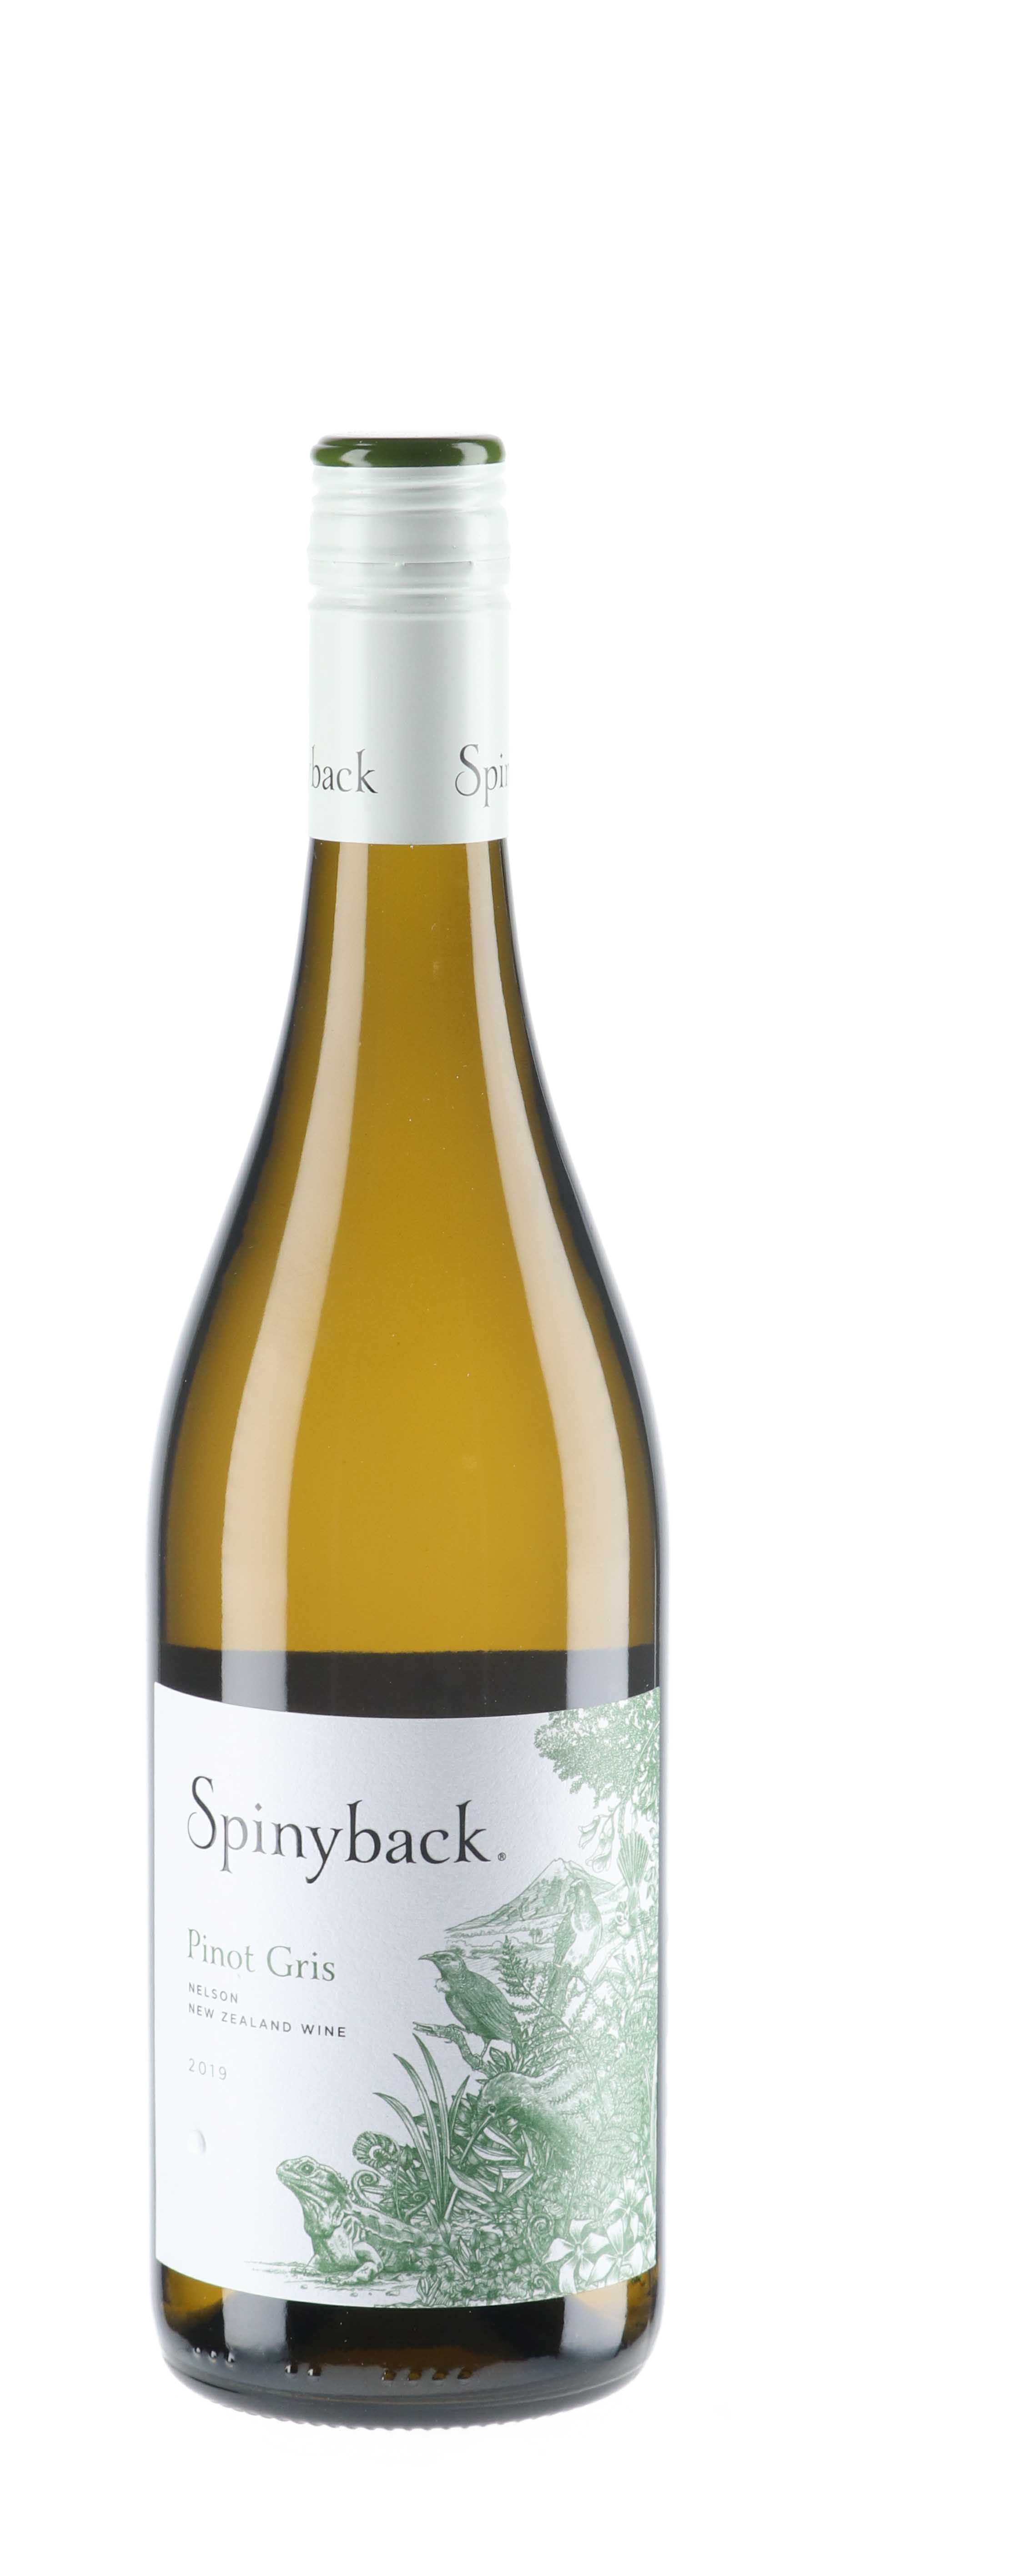 2019 Spinyback Pinot Gris New Zealand Wine